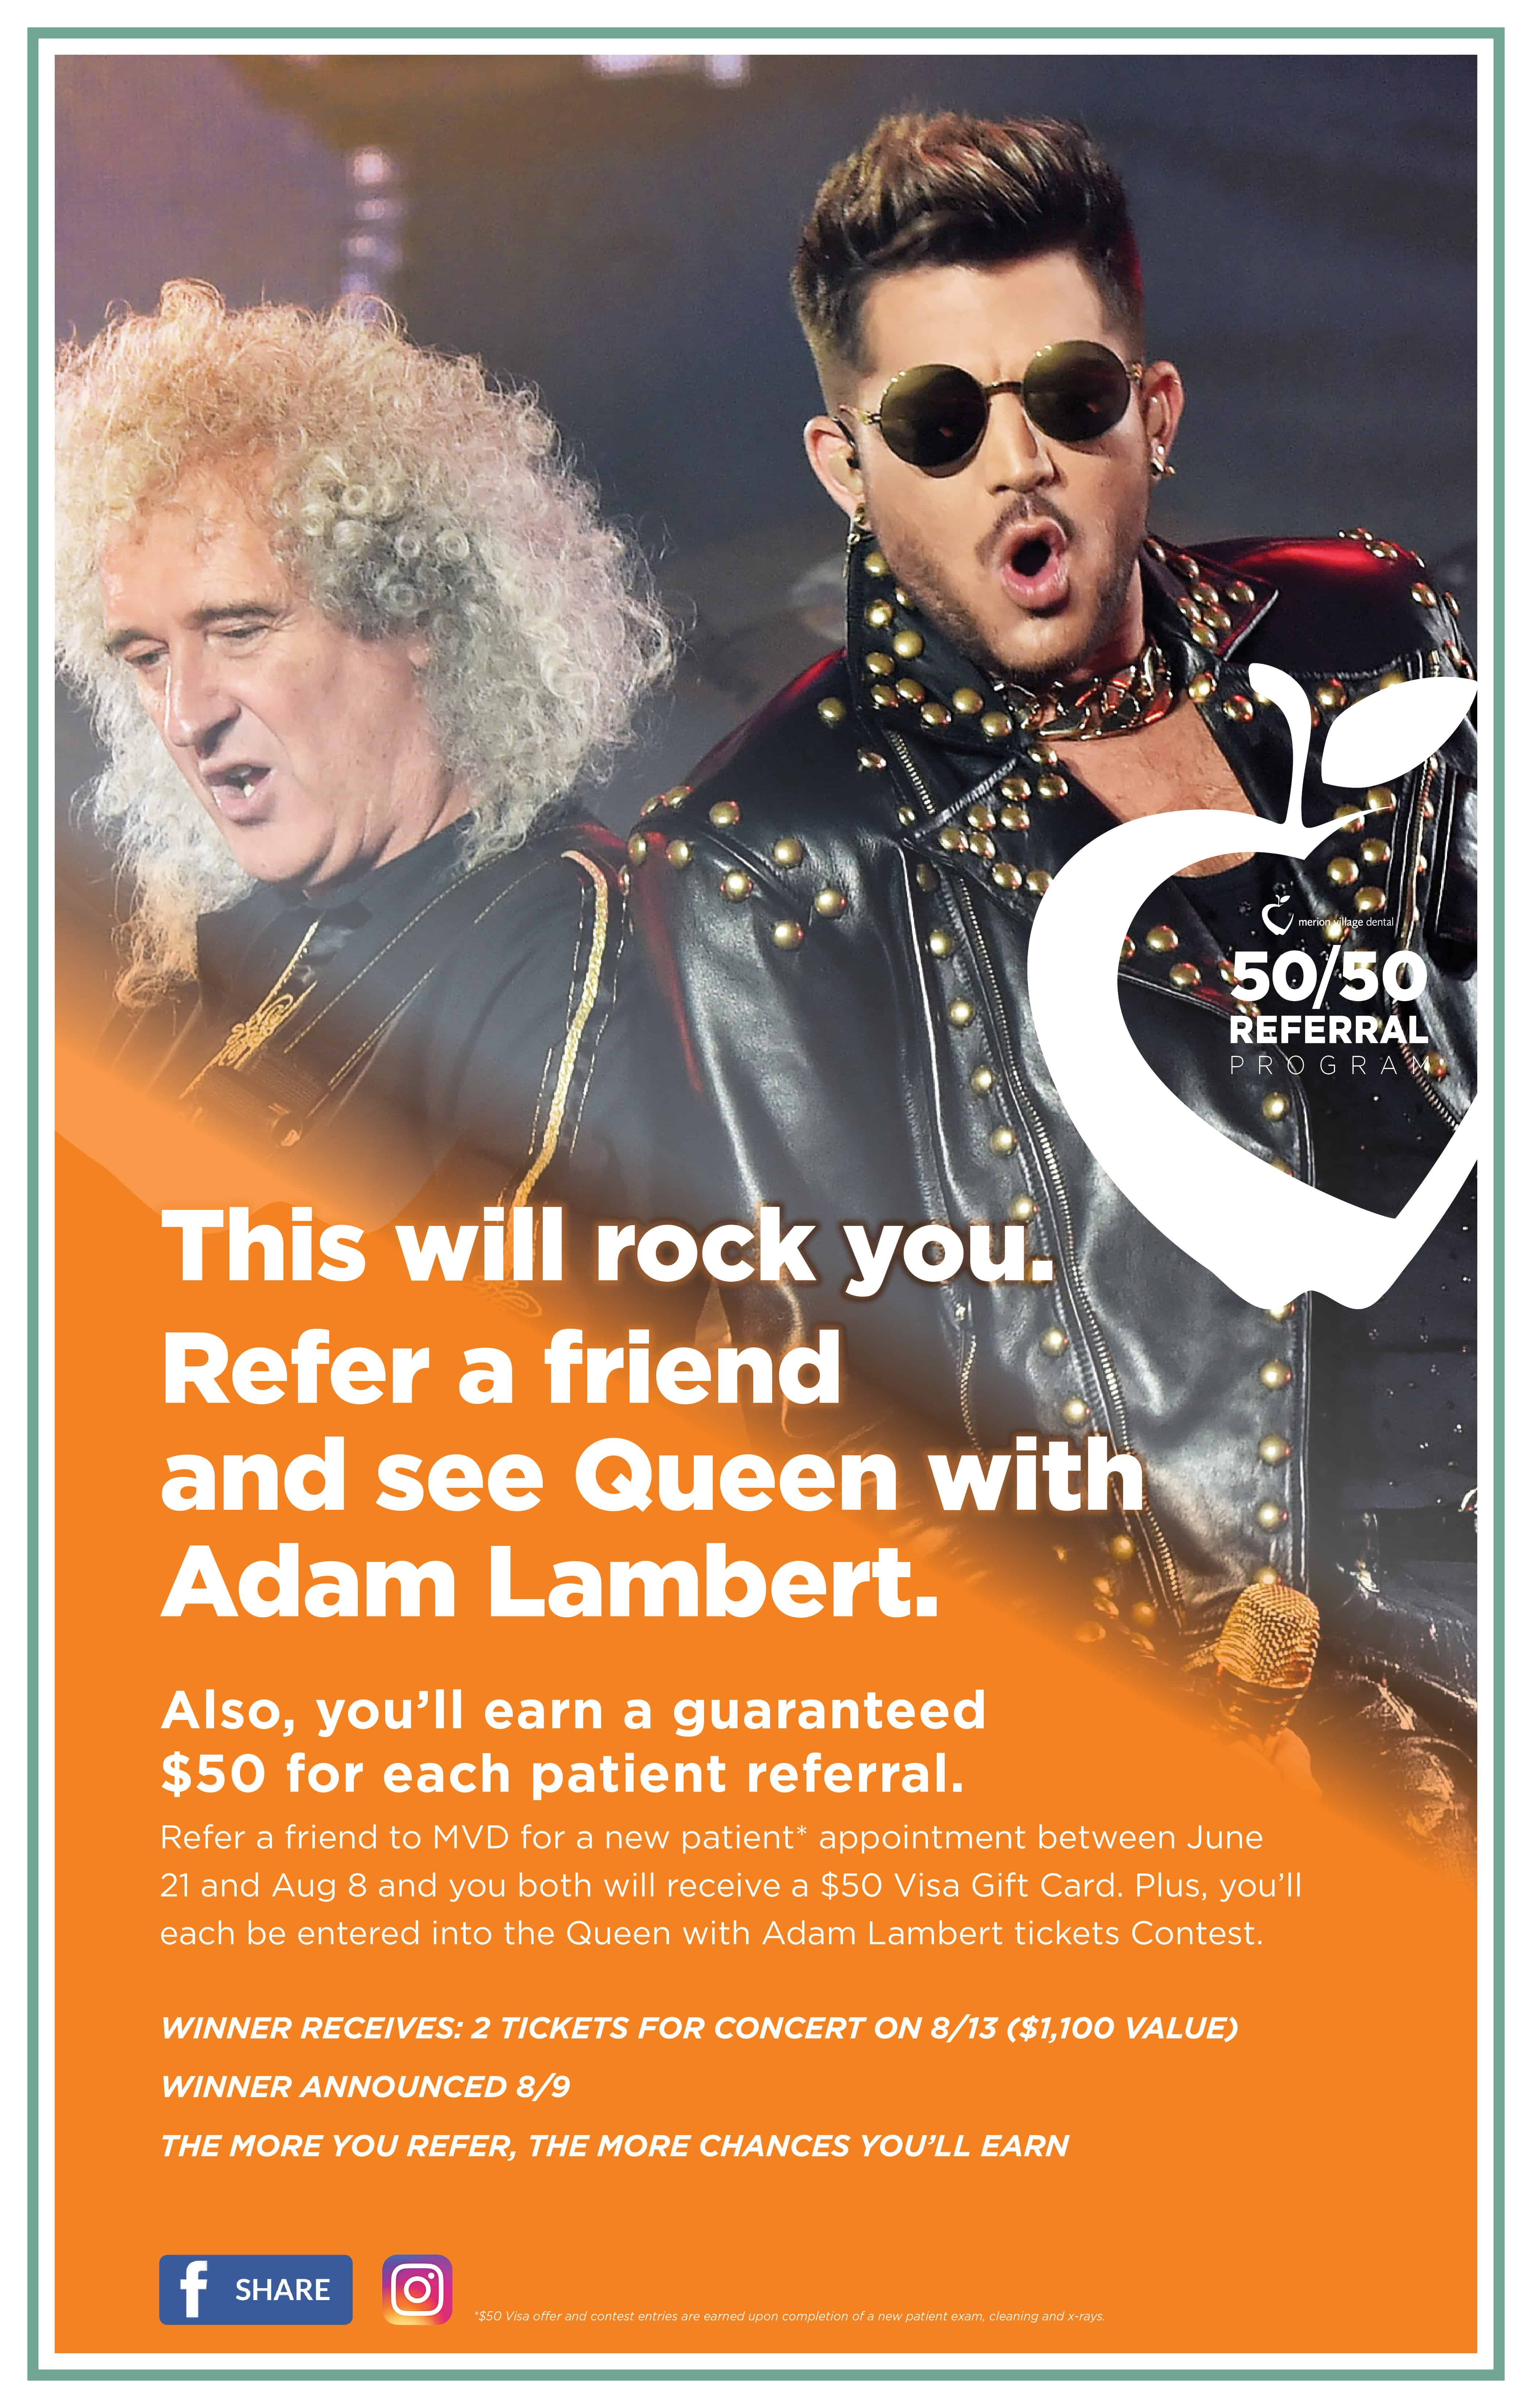 You could win tickets to see Queen with Adam Lambert!